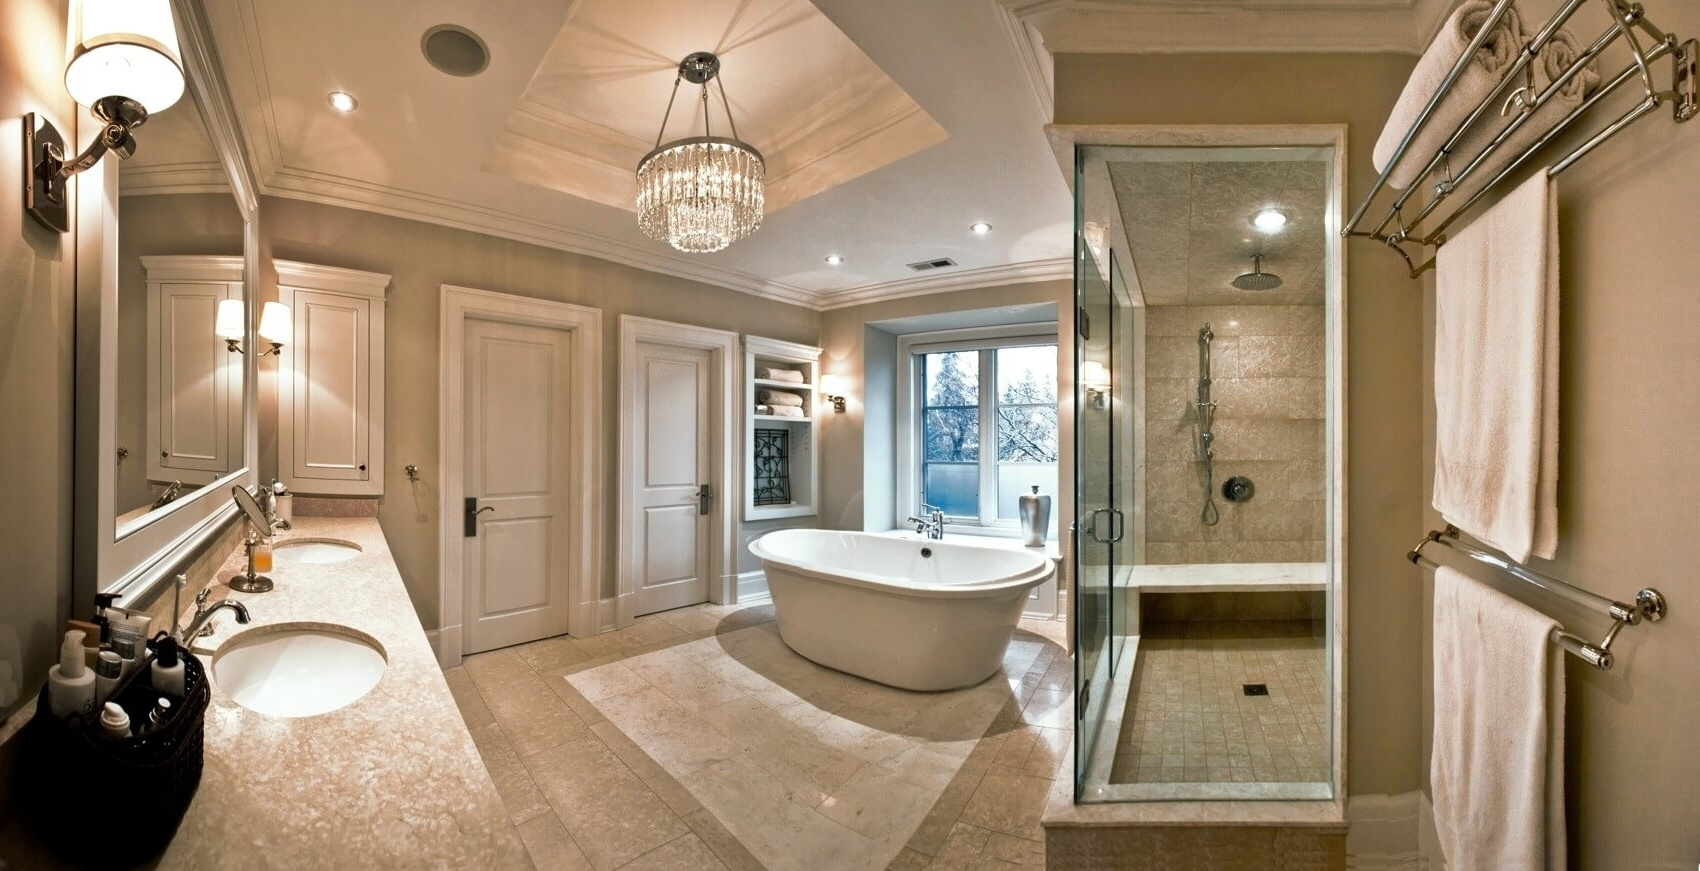 Crystal Bathroom Chandelier With Regard To Best And Newest Layered Lighting With Crystal Chandeliers – Doing It The Glow Way (View 4 of 15)